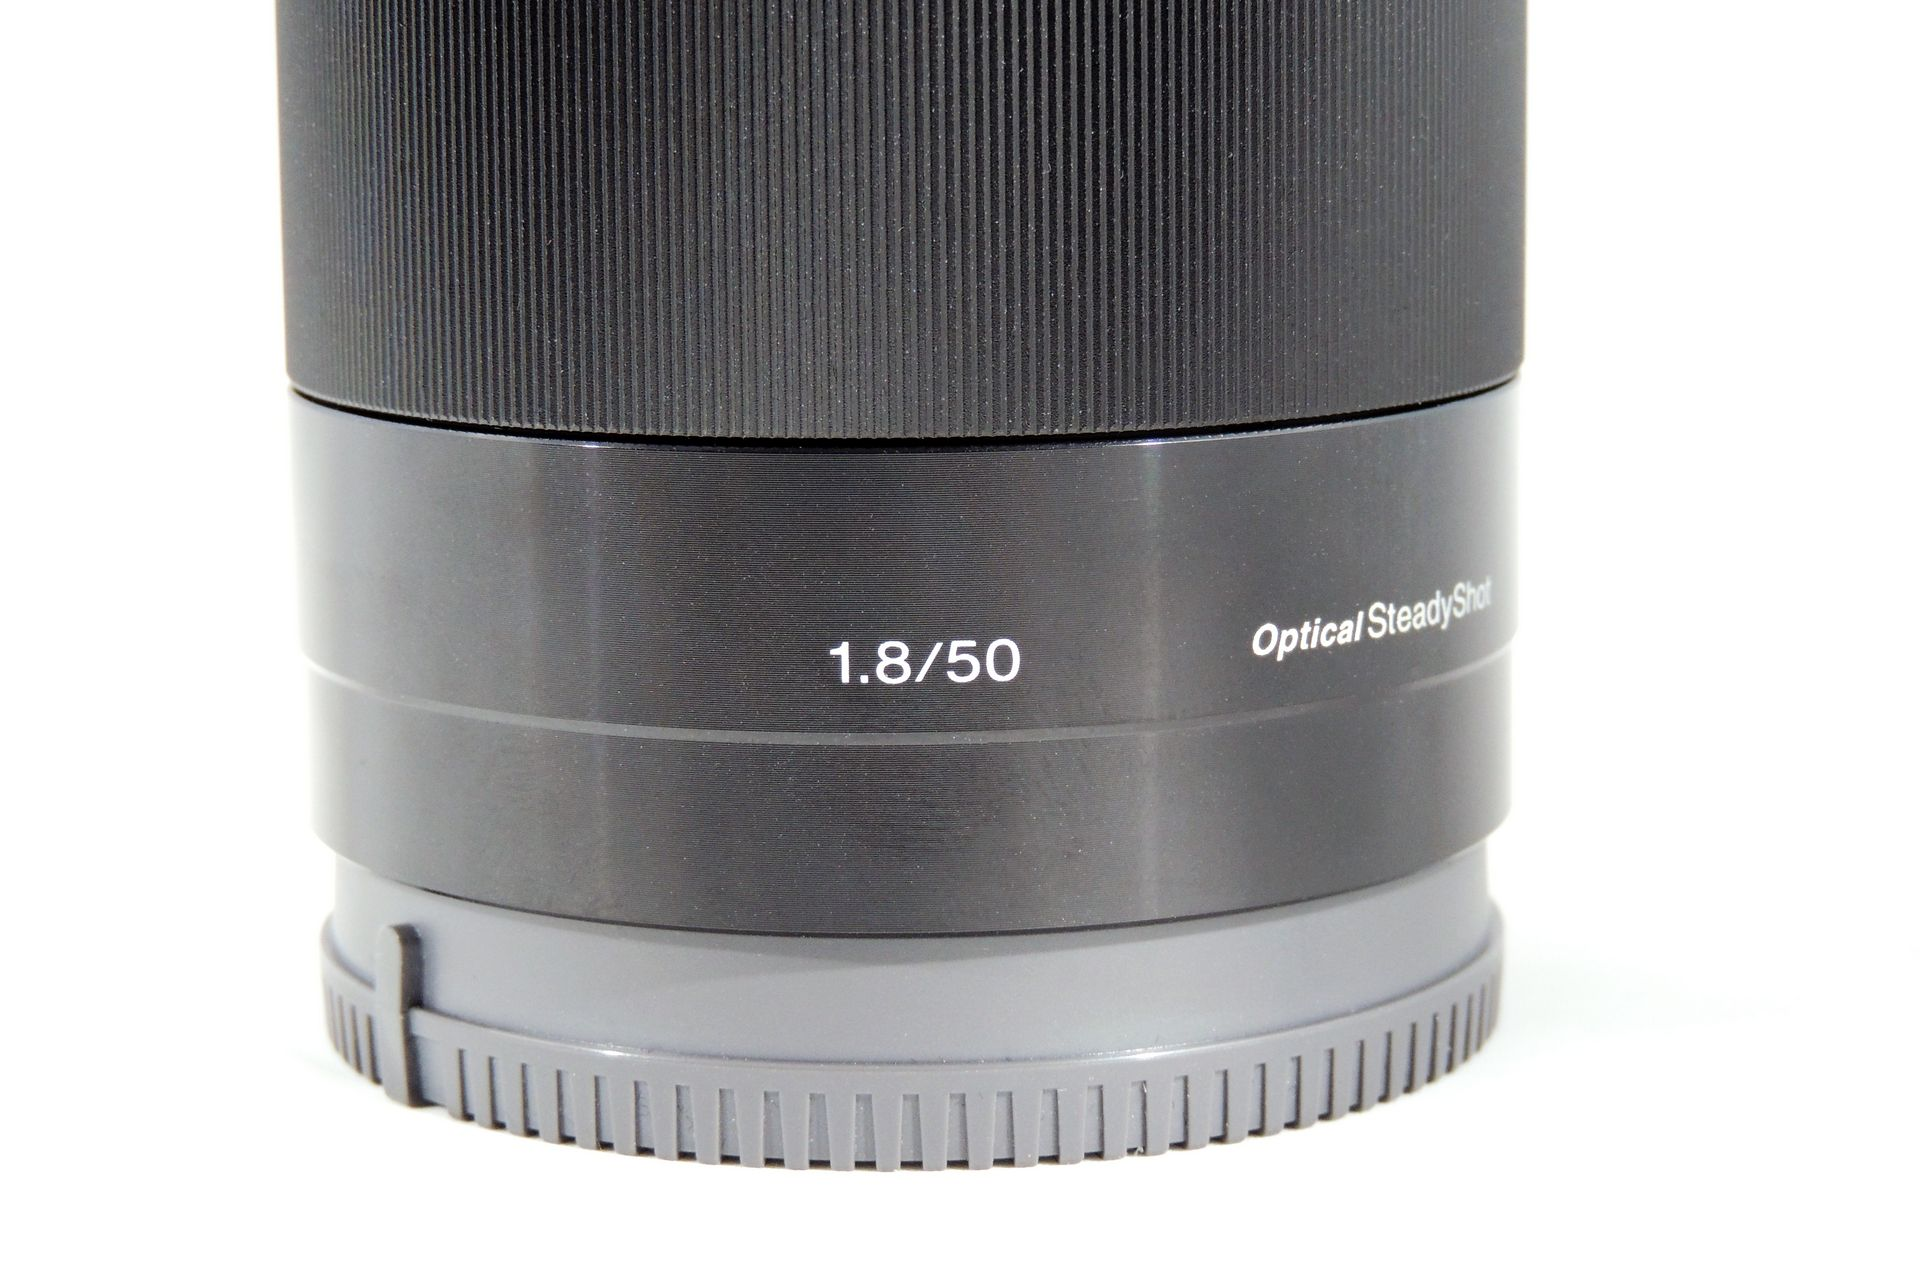 Sony 50mm F/1.8 lens for sale at Plasma Music